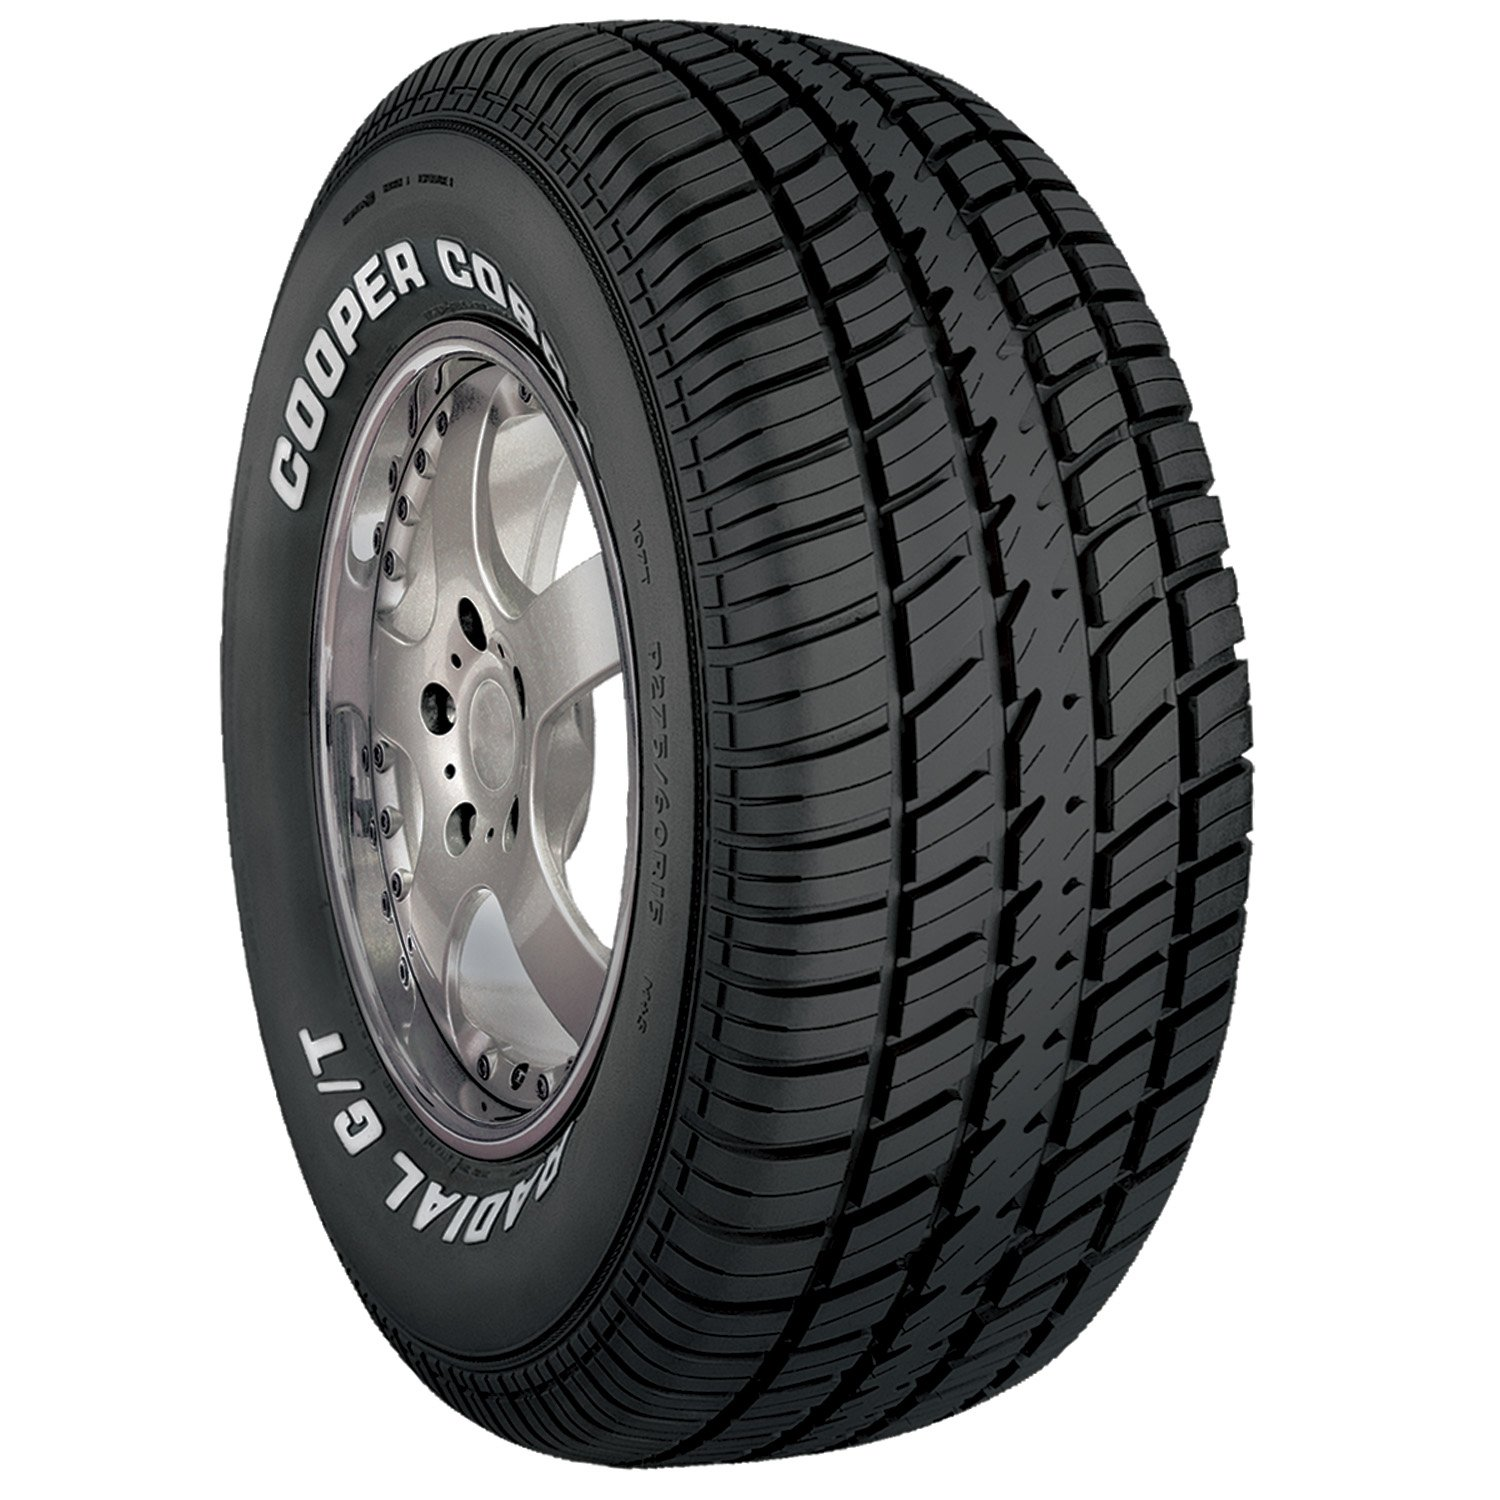 Cooper Cobra GT All-Season Tire - 275/60R15  107T by Cooper Tire (Image #1)